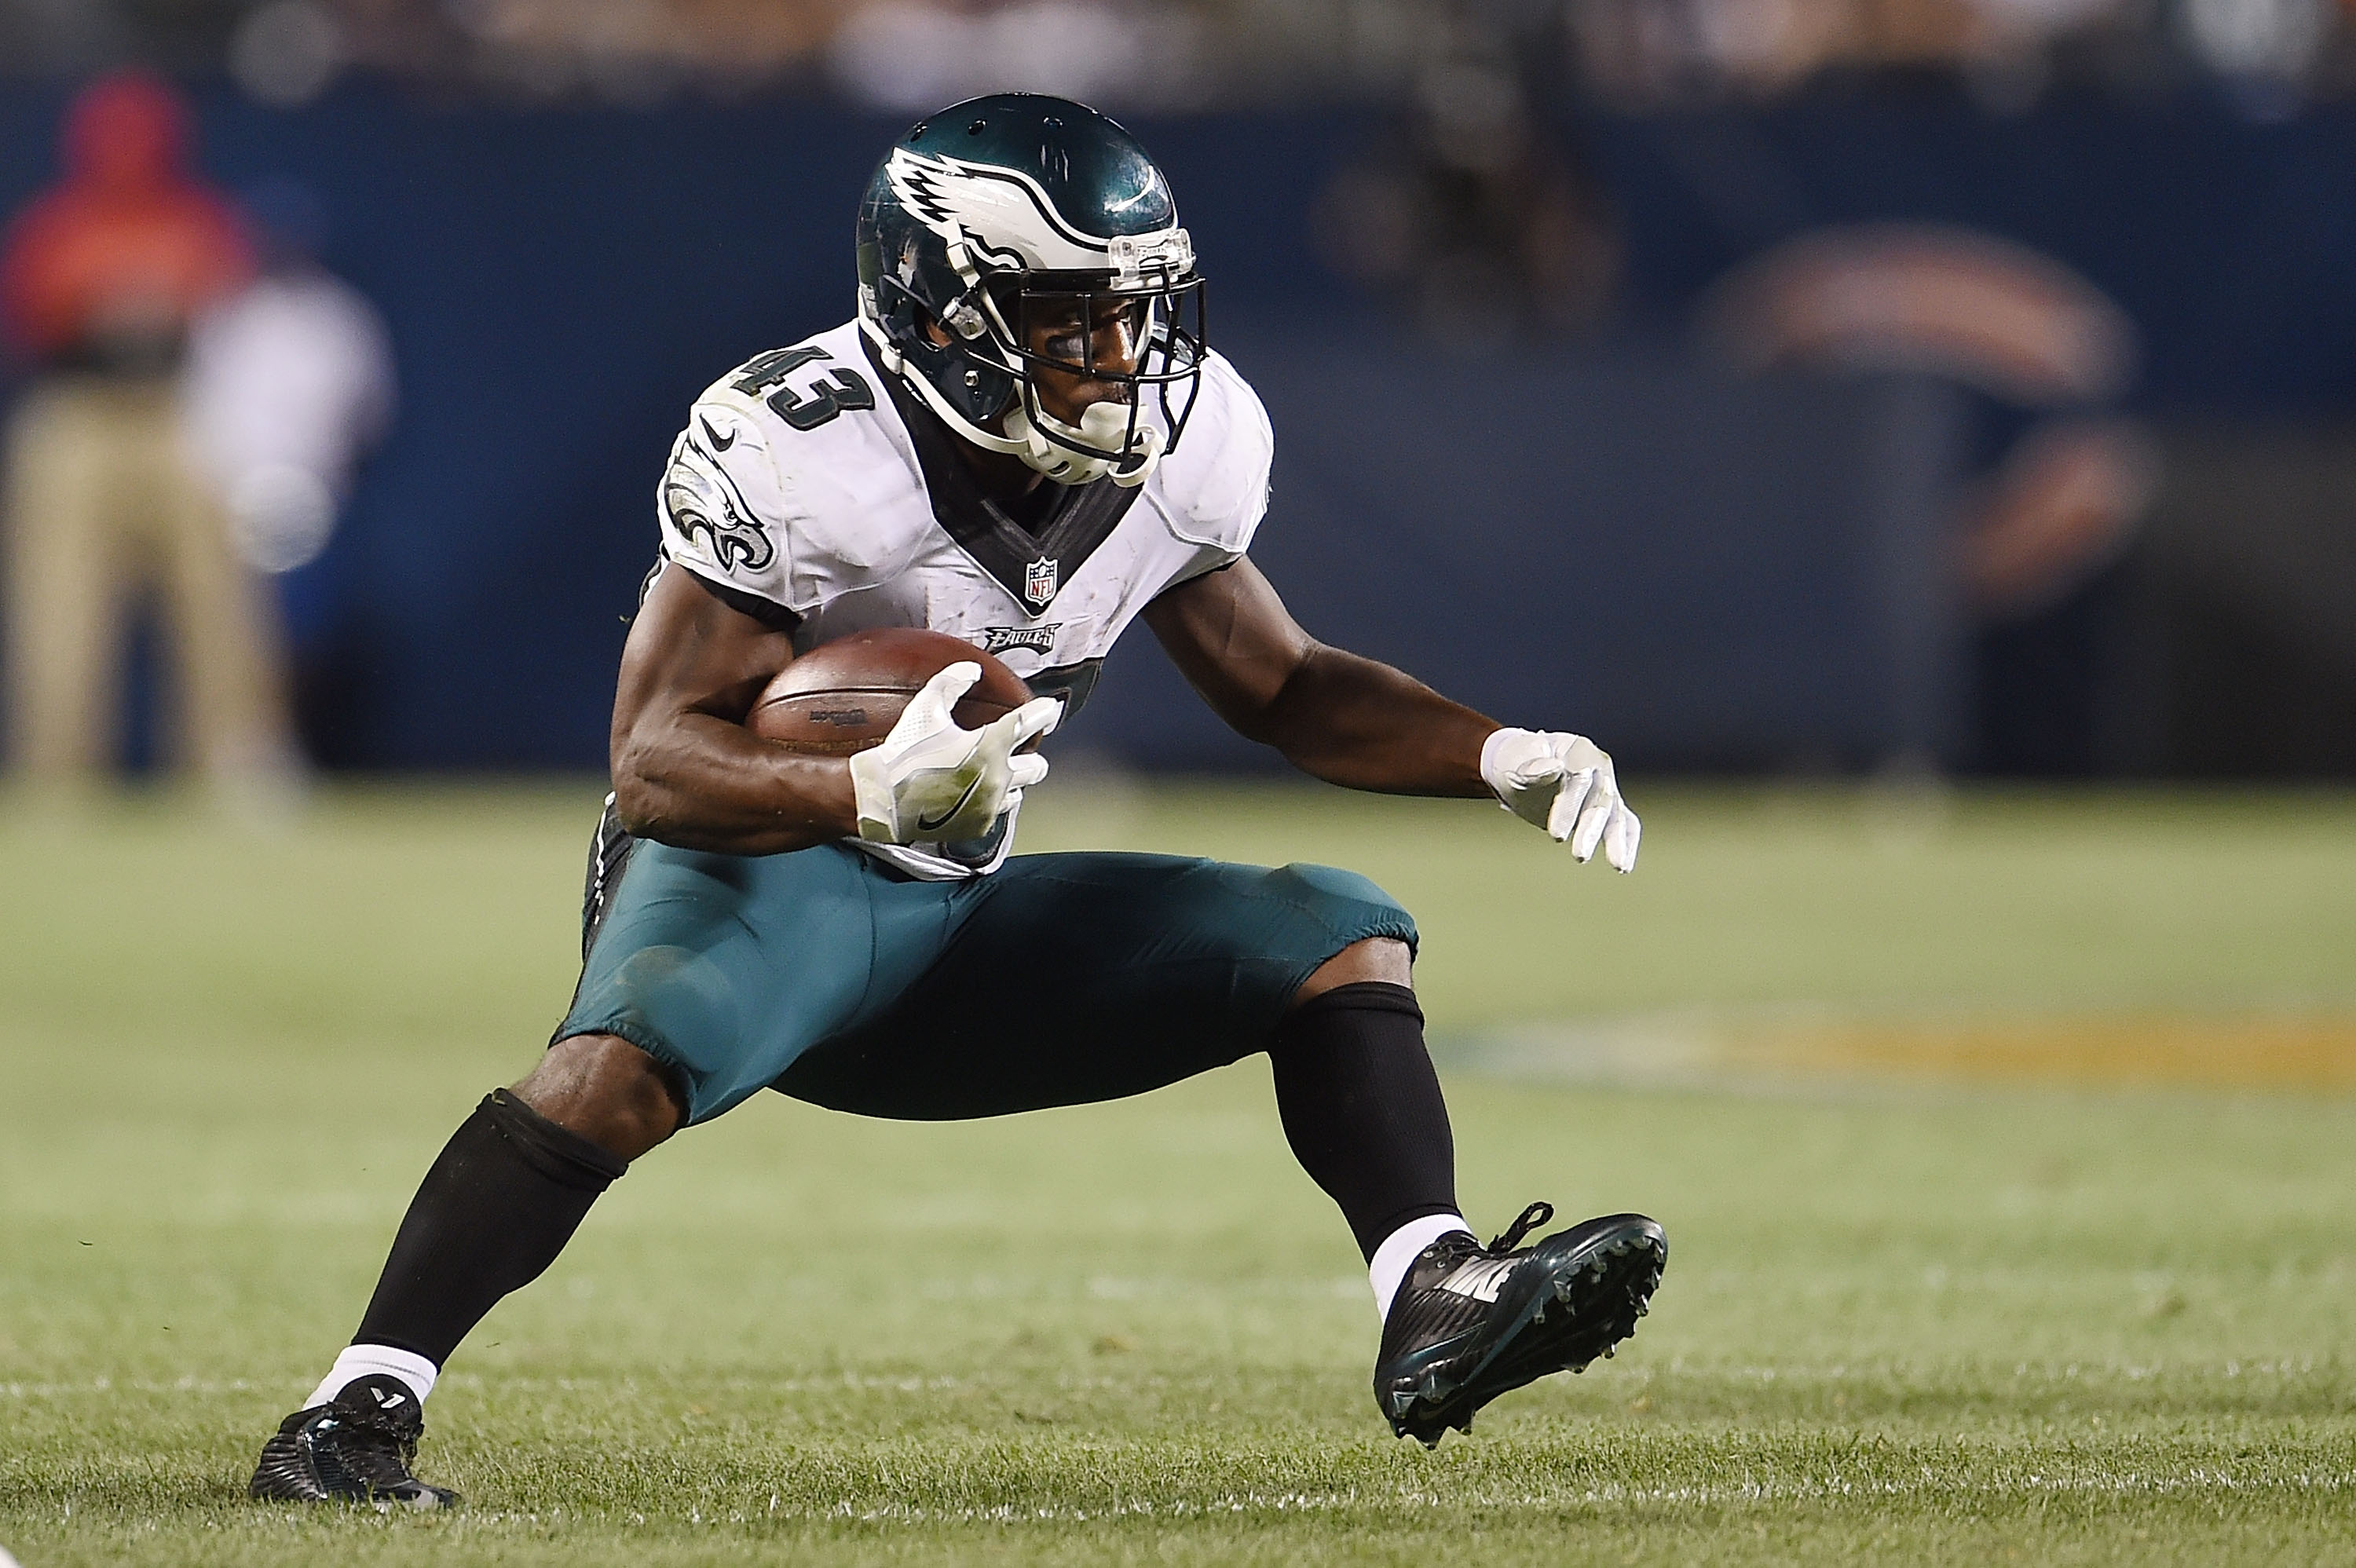 CHICAGO, IL - SEPTEMBER 19: Darren Sproles